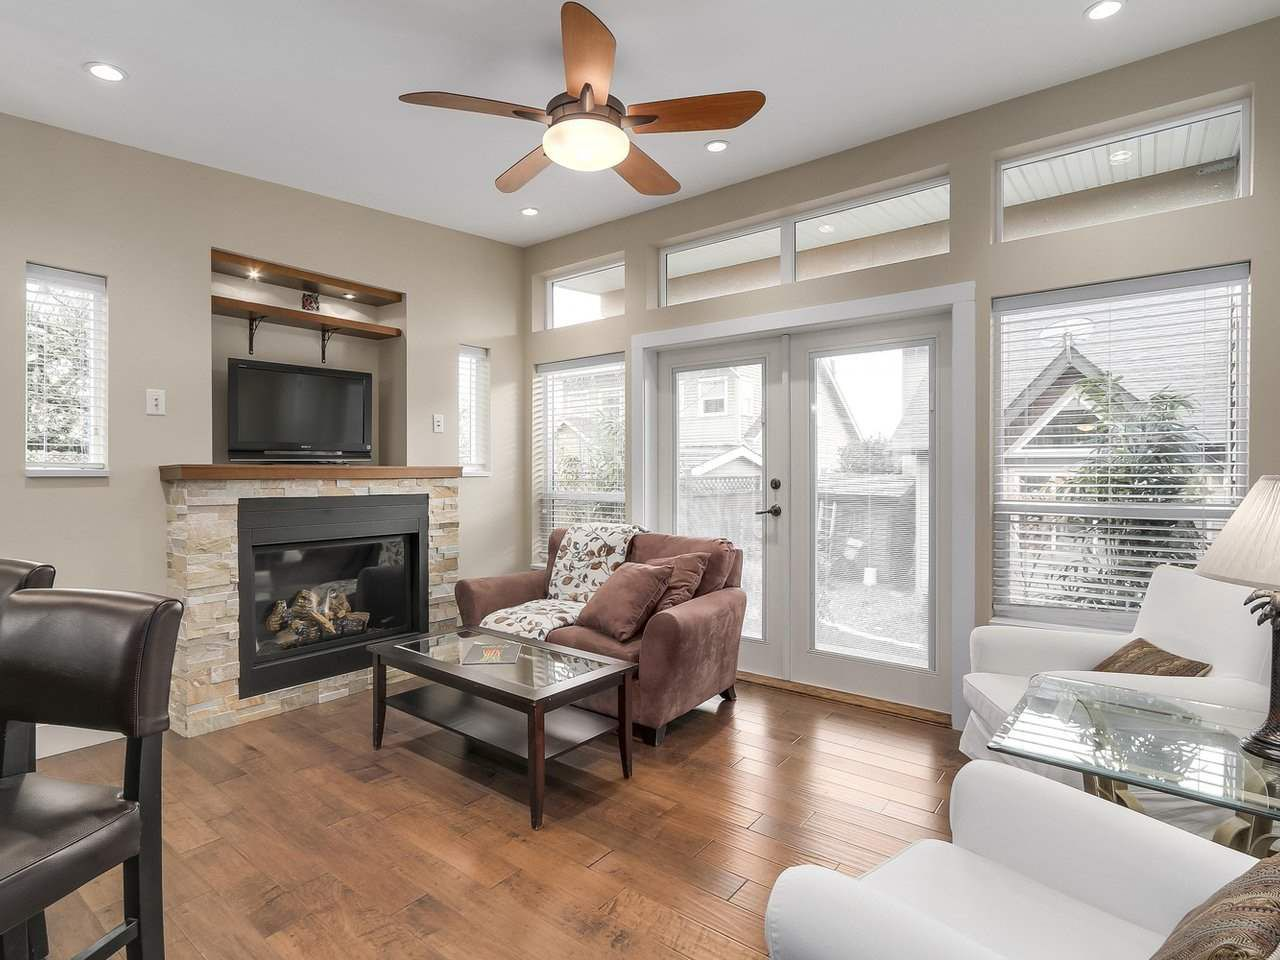 Photo 18: Photos: 658 E 4TH STREET in North Vancouver: Queensbury House for sale : MLS®# R2222993